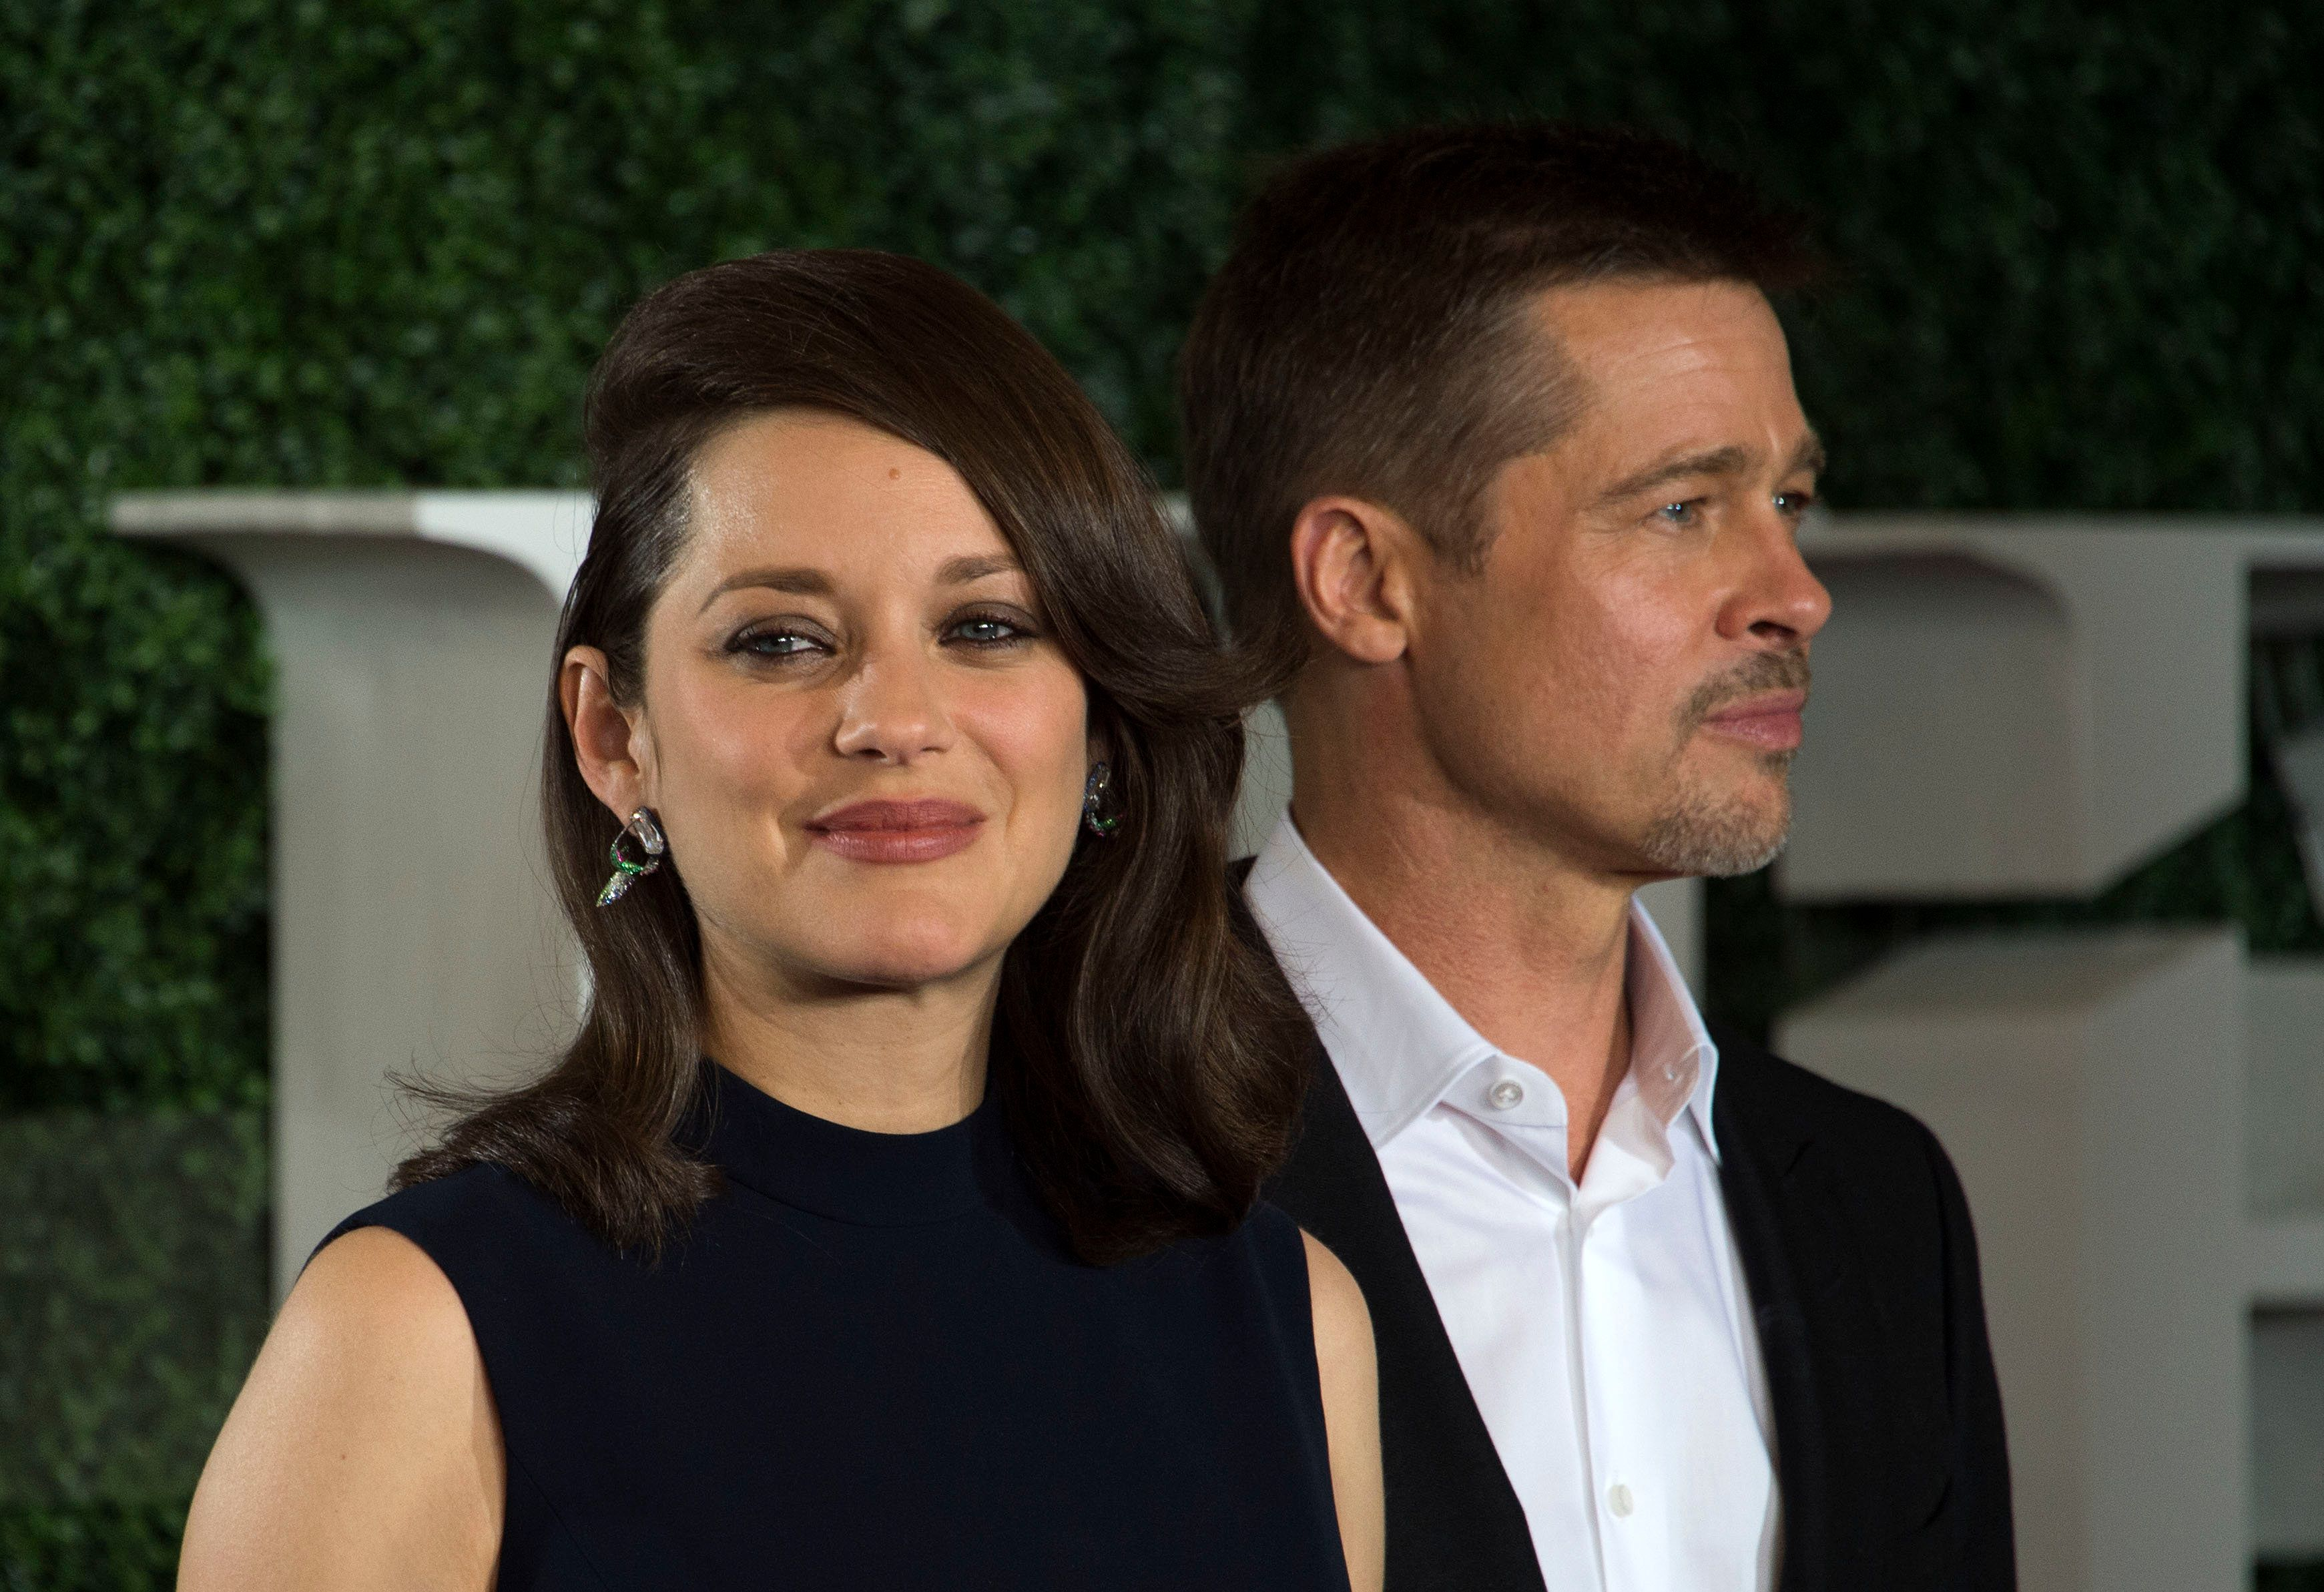 Actors Marion Cotillard (L) and Brad Pitt attend The 'Allied' Fan Event Presented by Paramount Pictures, in Westwood, California, on November 9, 2016. / AFP / VALERIE MACON        (Photo credit should read VALERIE MACON/AFP/Getty Images)